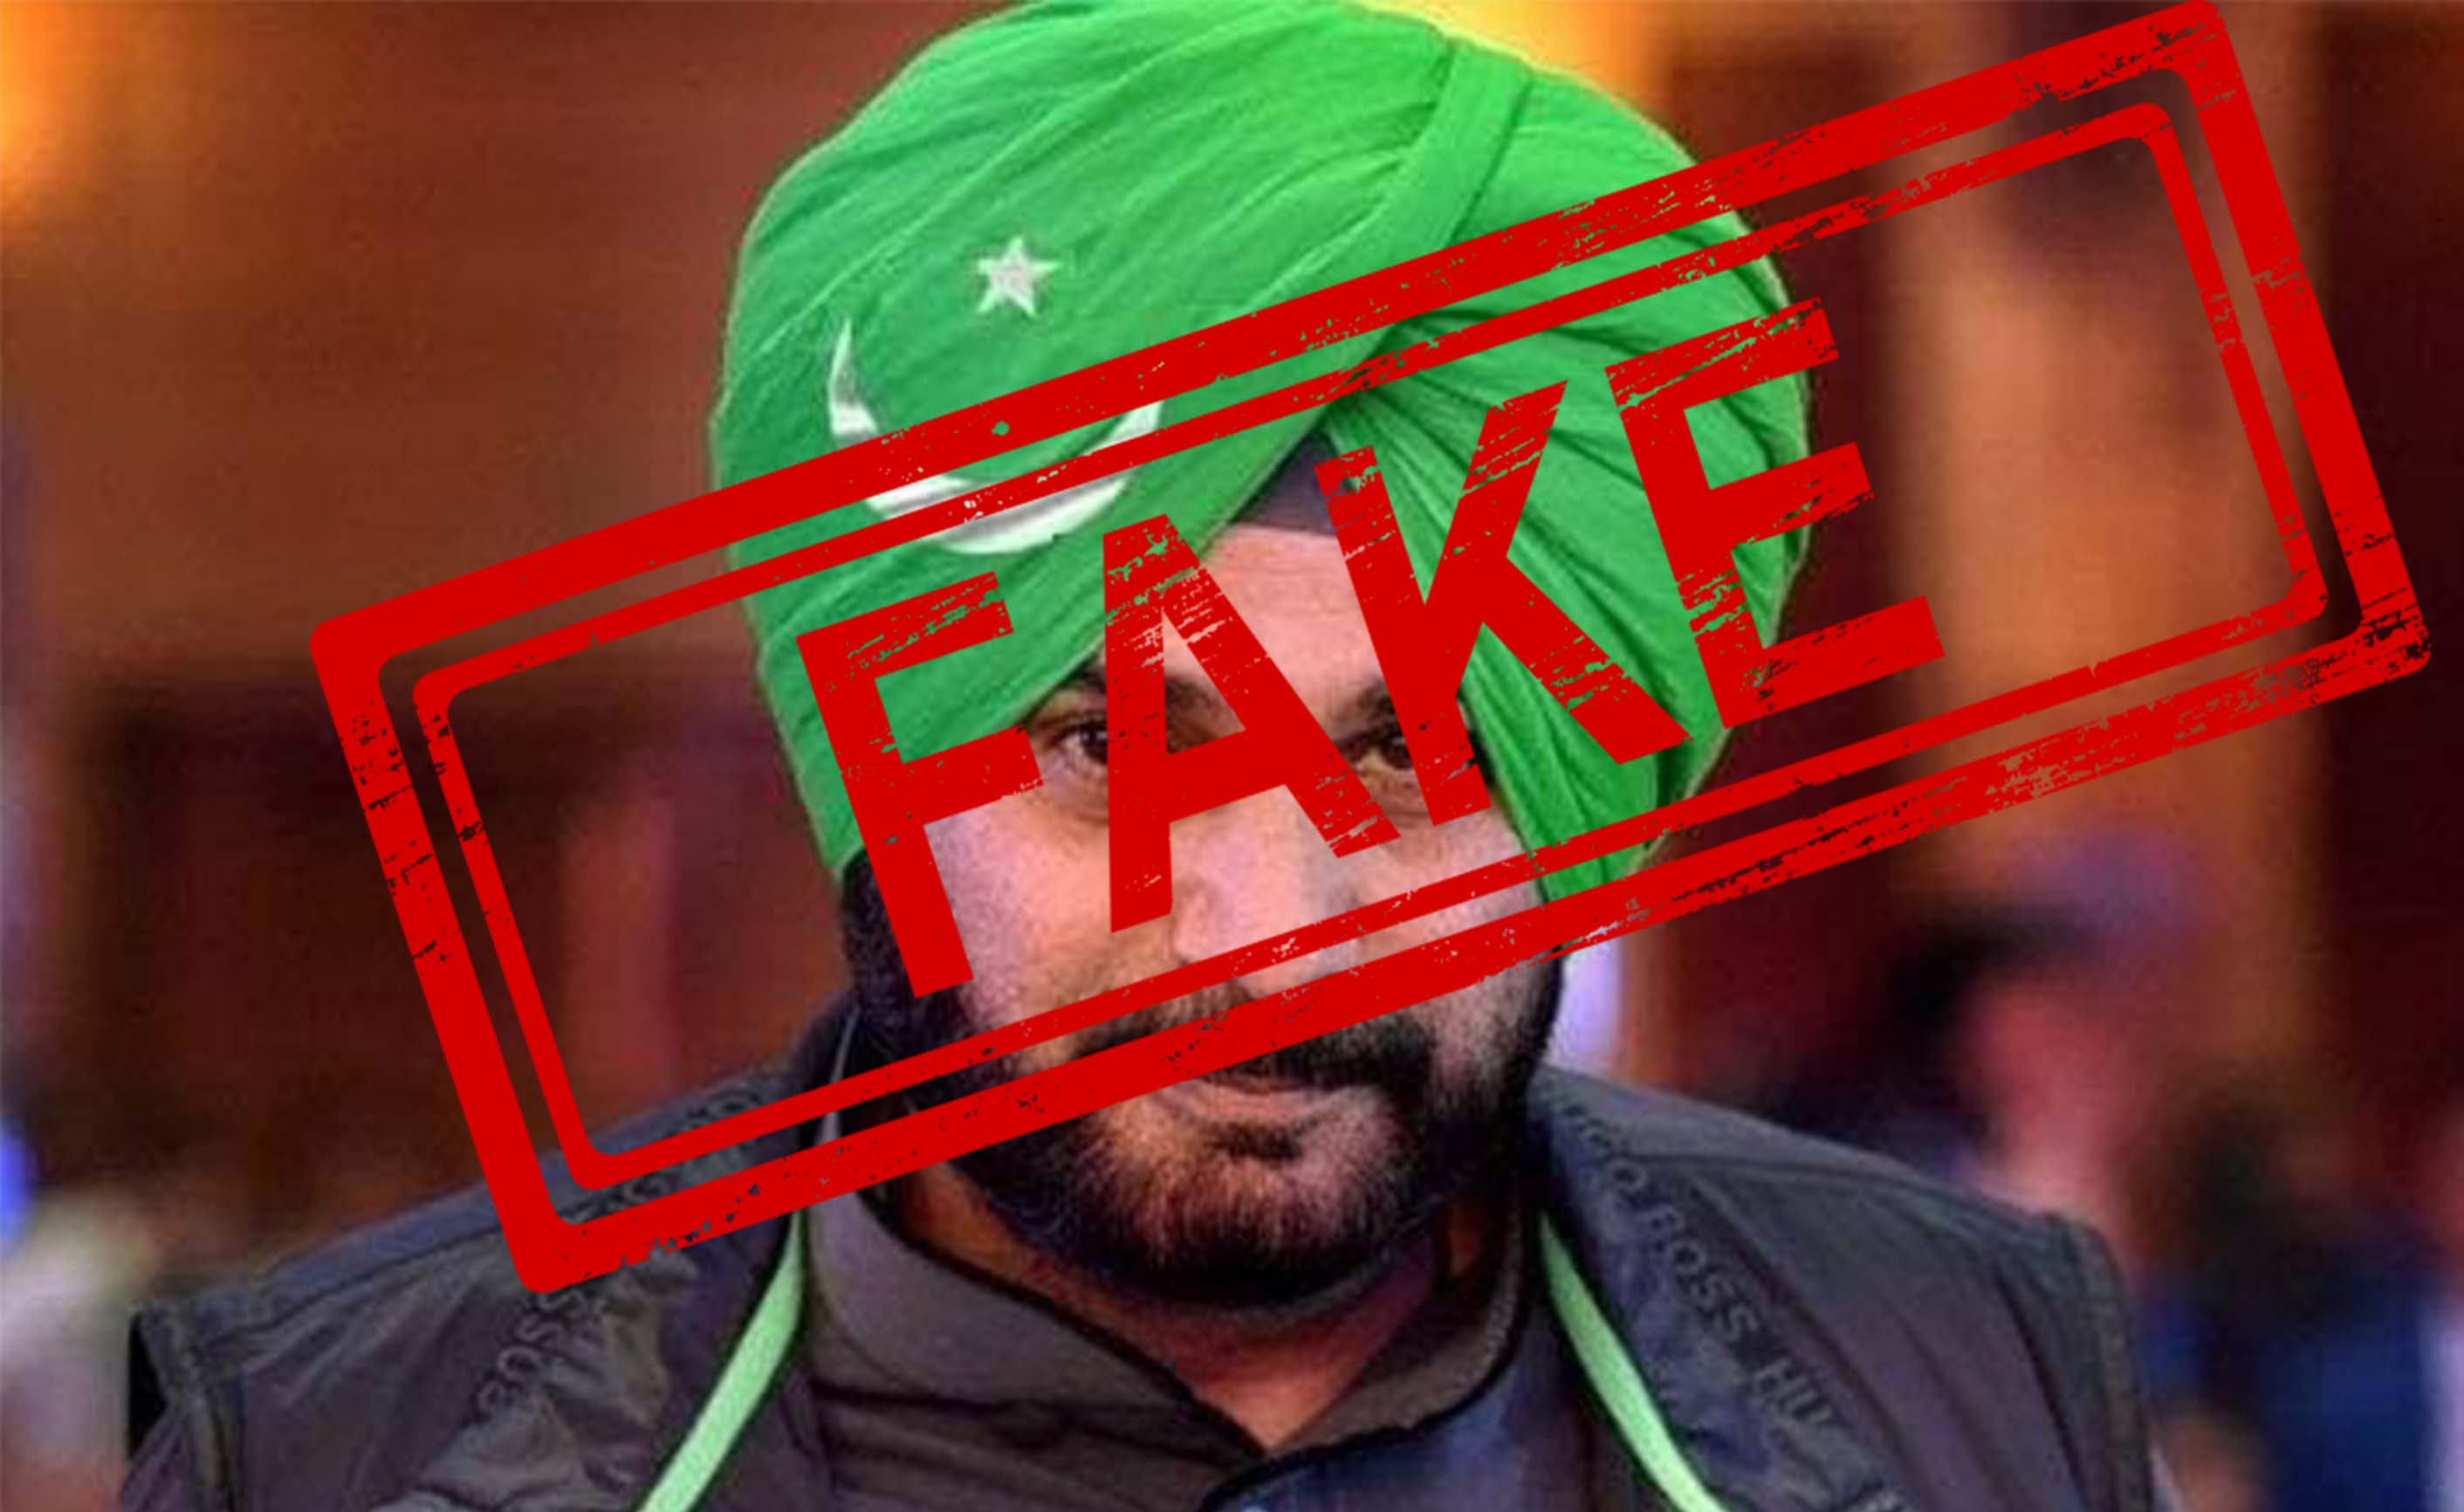 Navjot Singh Sidhu, Fake, Fact Check, Fact Checker, Pakistan, Flag, Turban, India, NewsMobile, Mobile, News